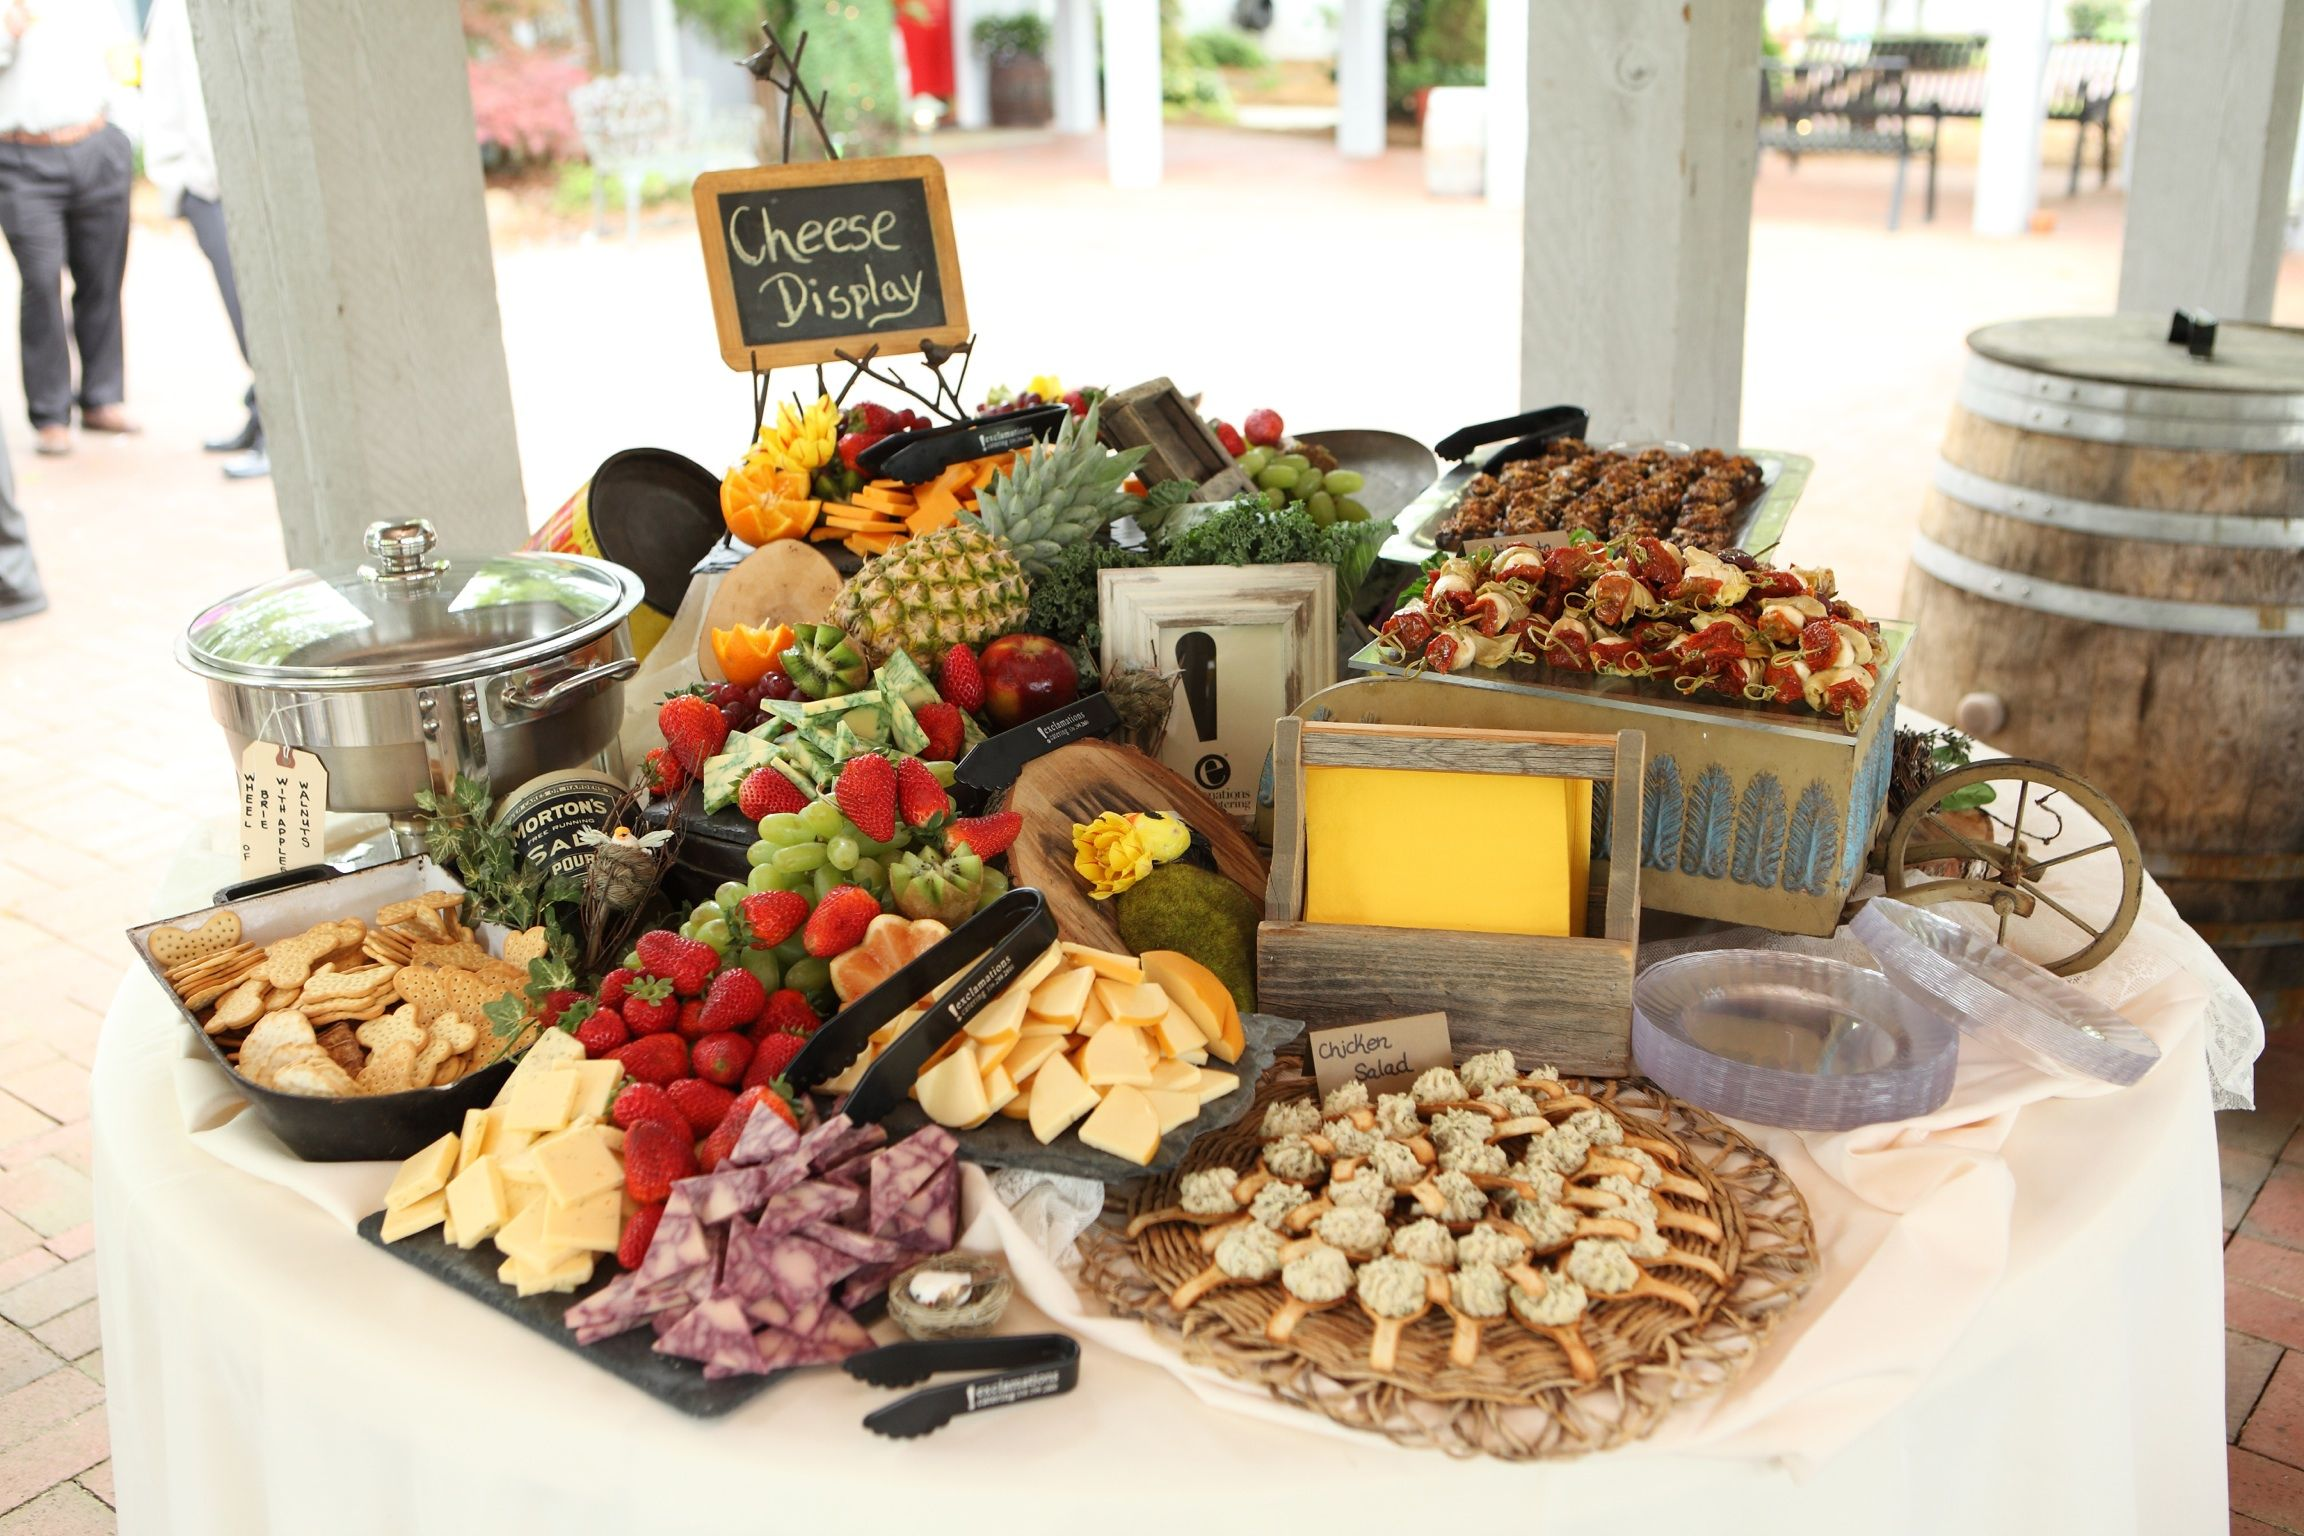 Perfect Display Of Cheese, Crackers, Fruit, Finger Foods